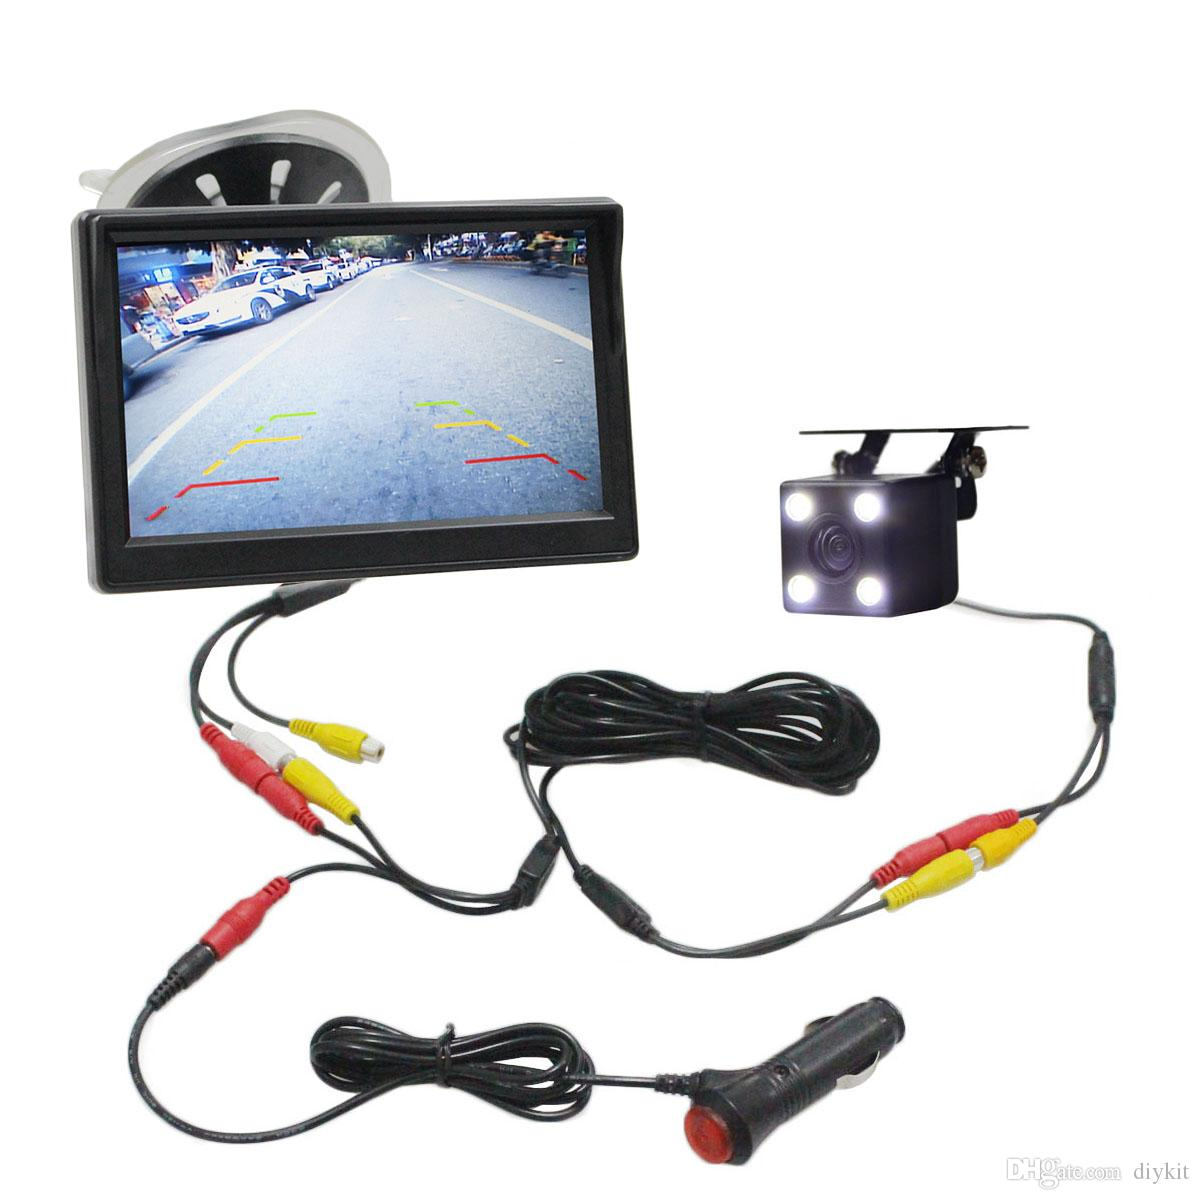 DIYKIT 5 inch Car Monitor Waterproof Reverse LED Night Vision Color Rear View Car Camera For Parking Assistance System